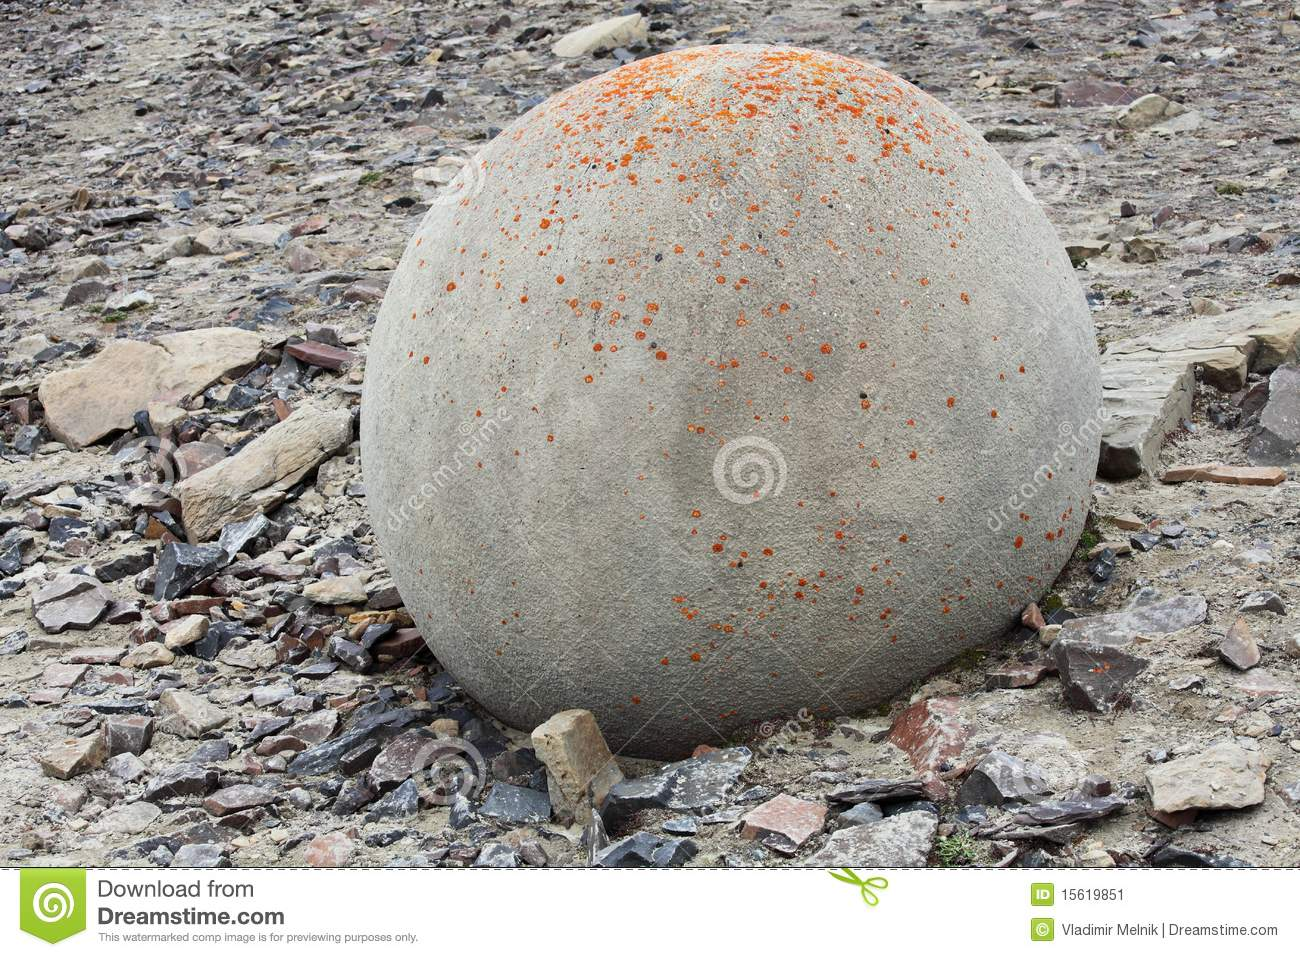 Mysterious boulders and pebbles of Champ Island